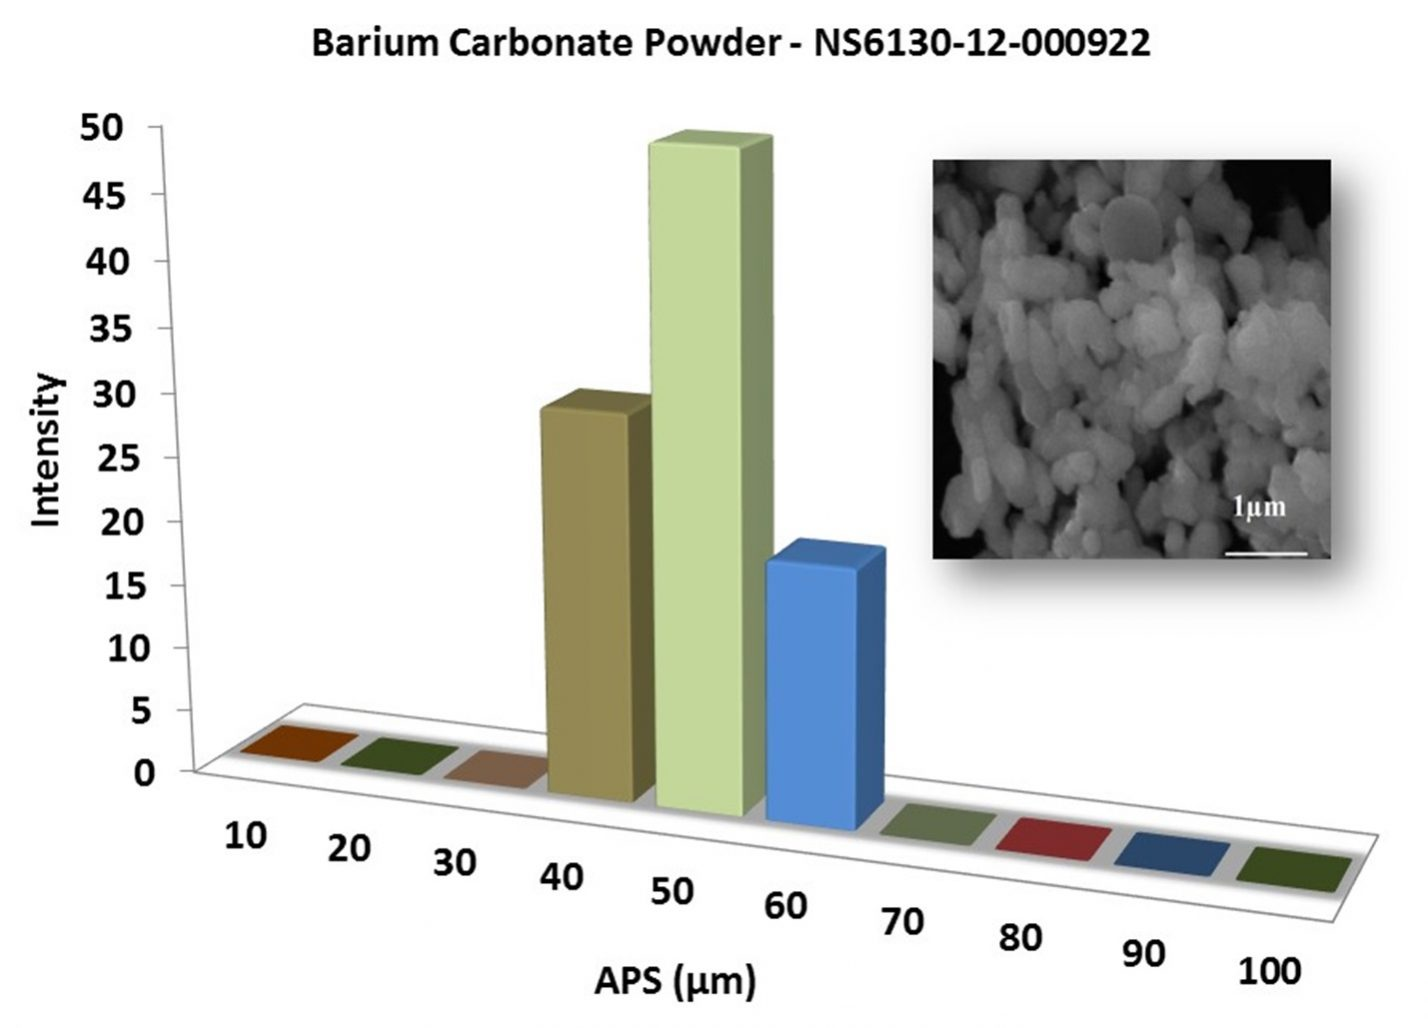 Particles Size Analysis – BaCO3 Powder